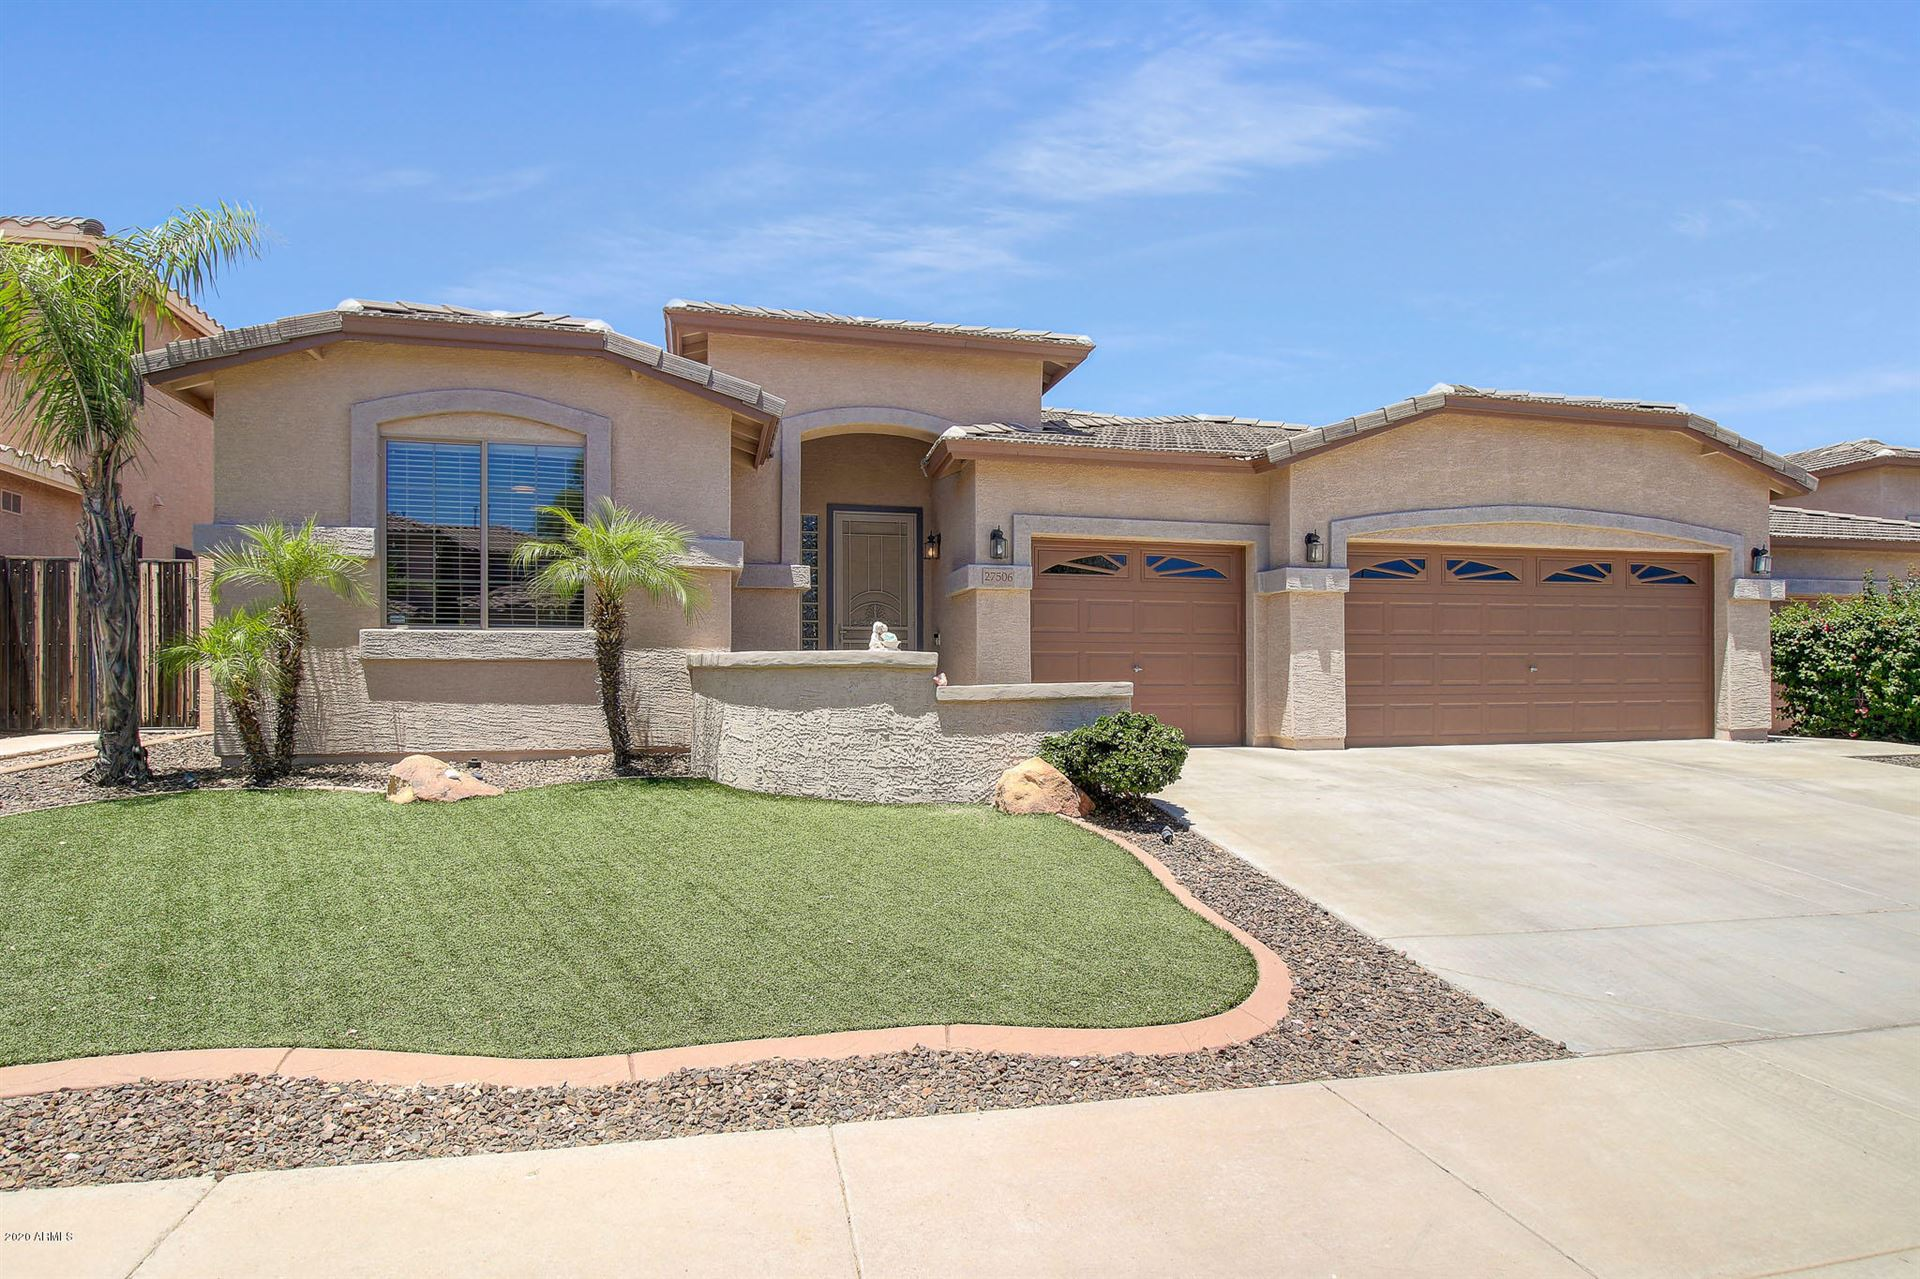 27506 N 64TH Lane, Phoenix, AZ 85083 - MLS#: 6083176